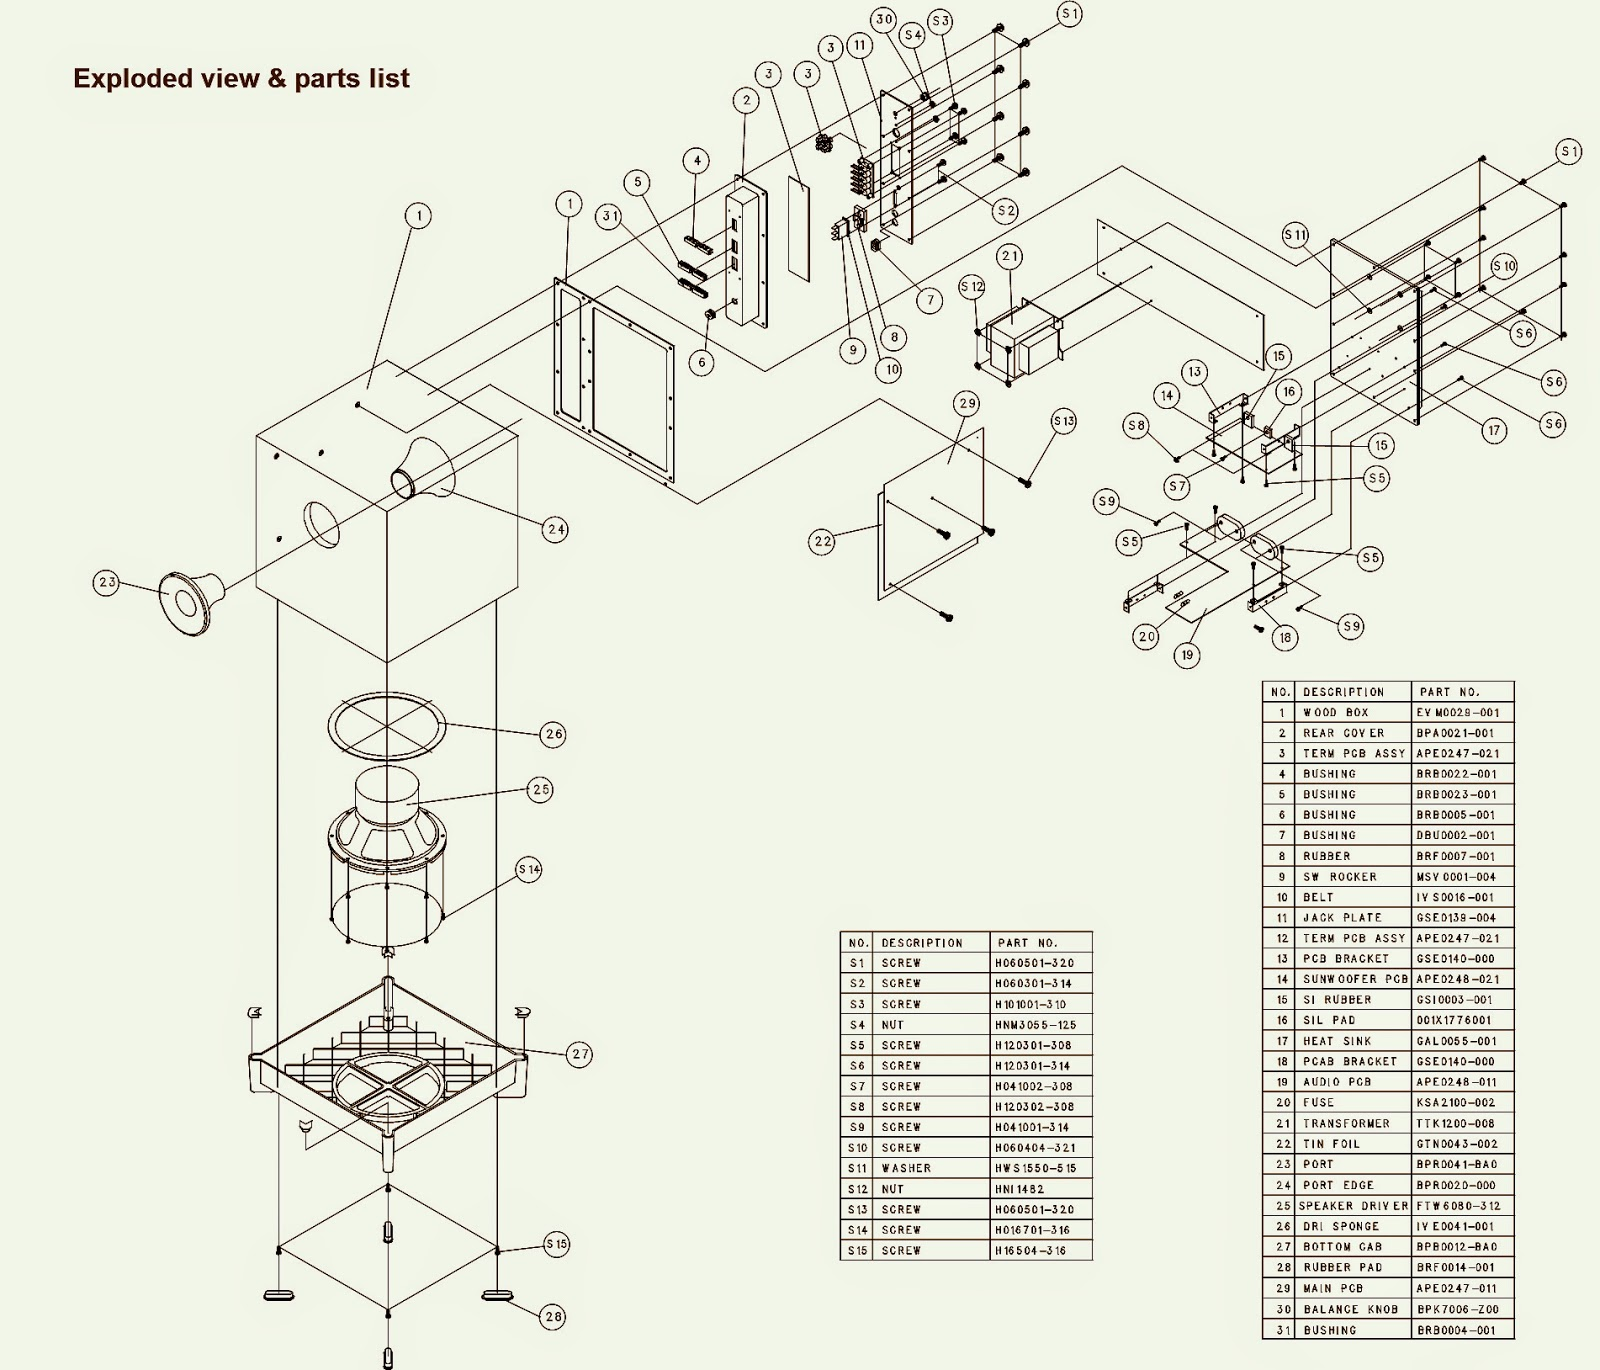 1911 Schematics And Parts Lists Sear Diagram Free Download Wiring Diagrams Pictures Jbl Sub Schematic Exploded View List Blogspot Com Simple 1600x1370 Image